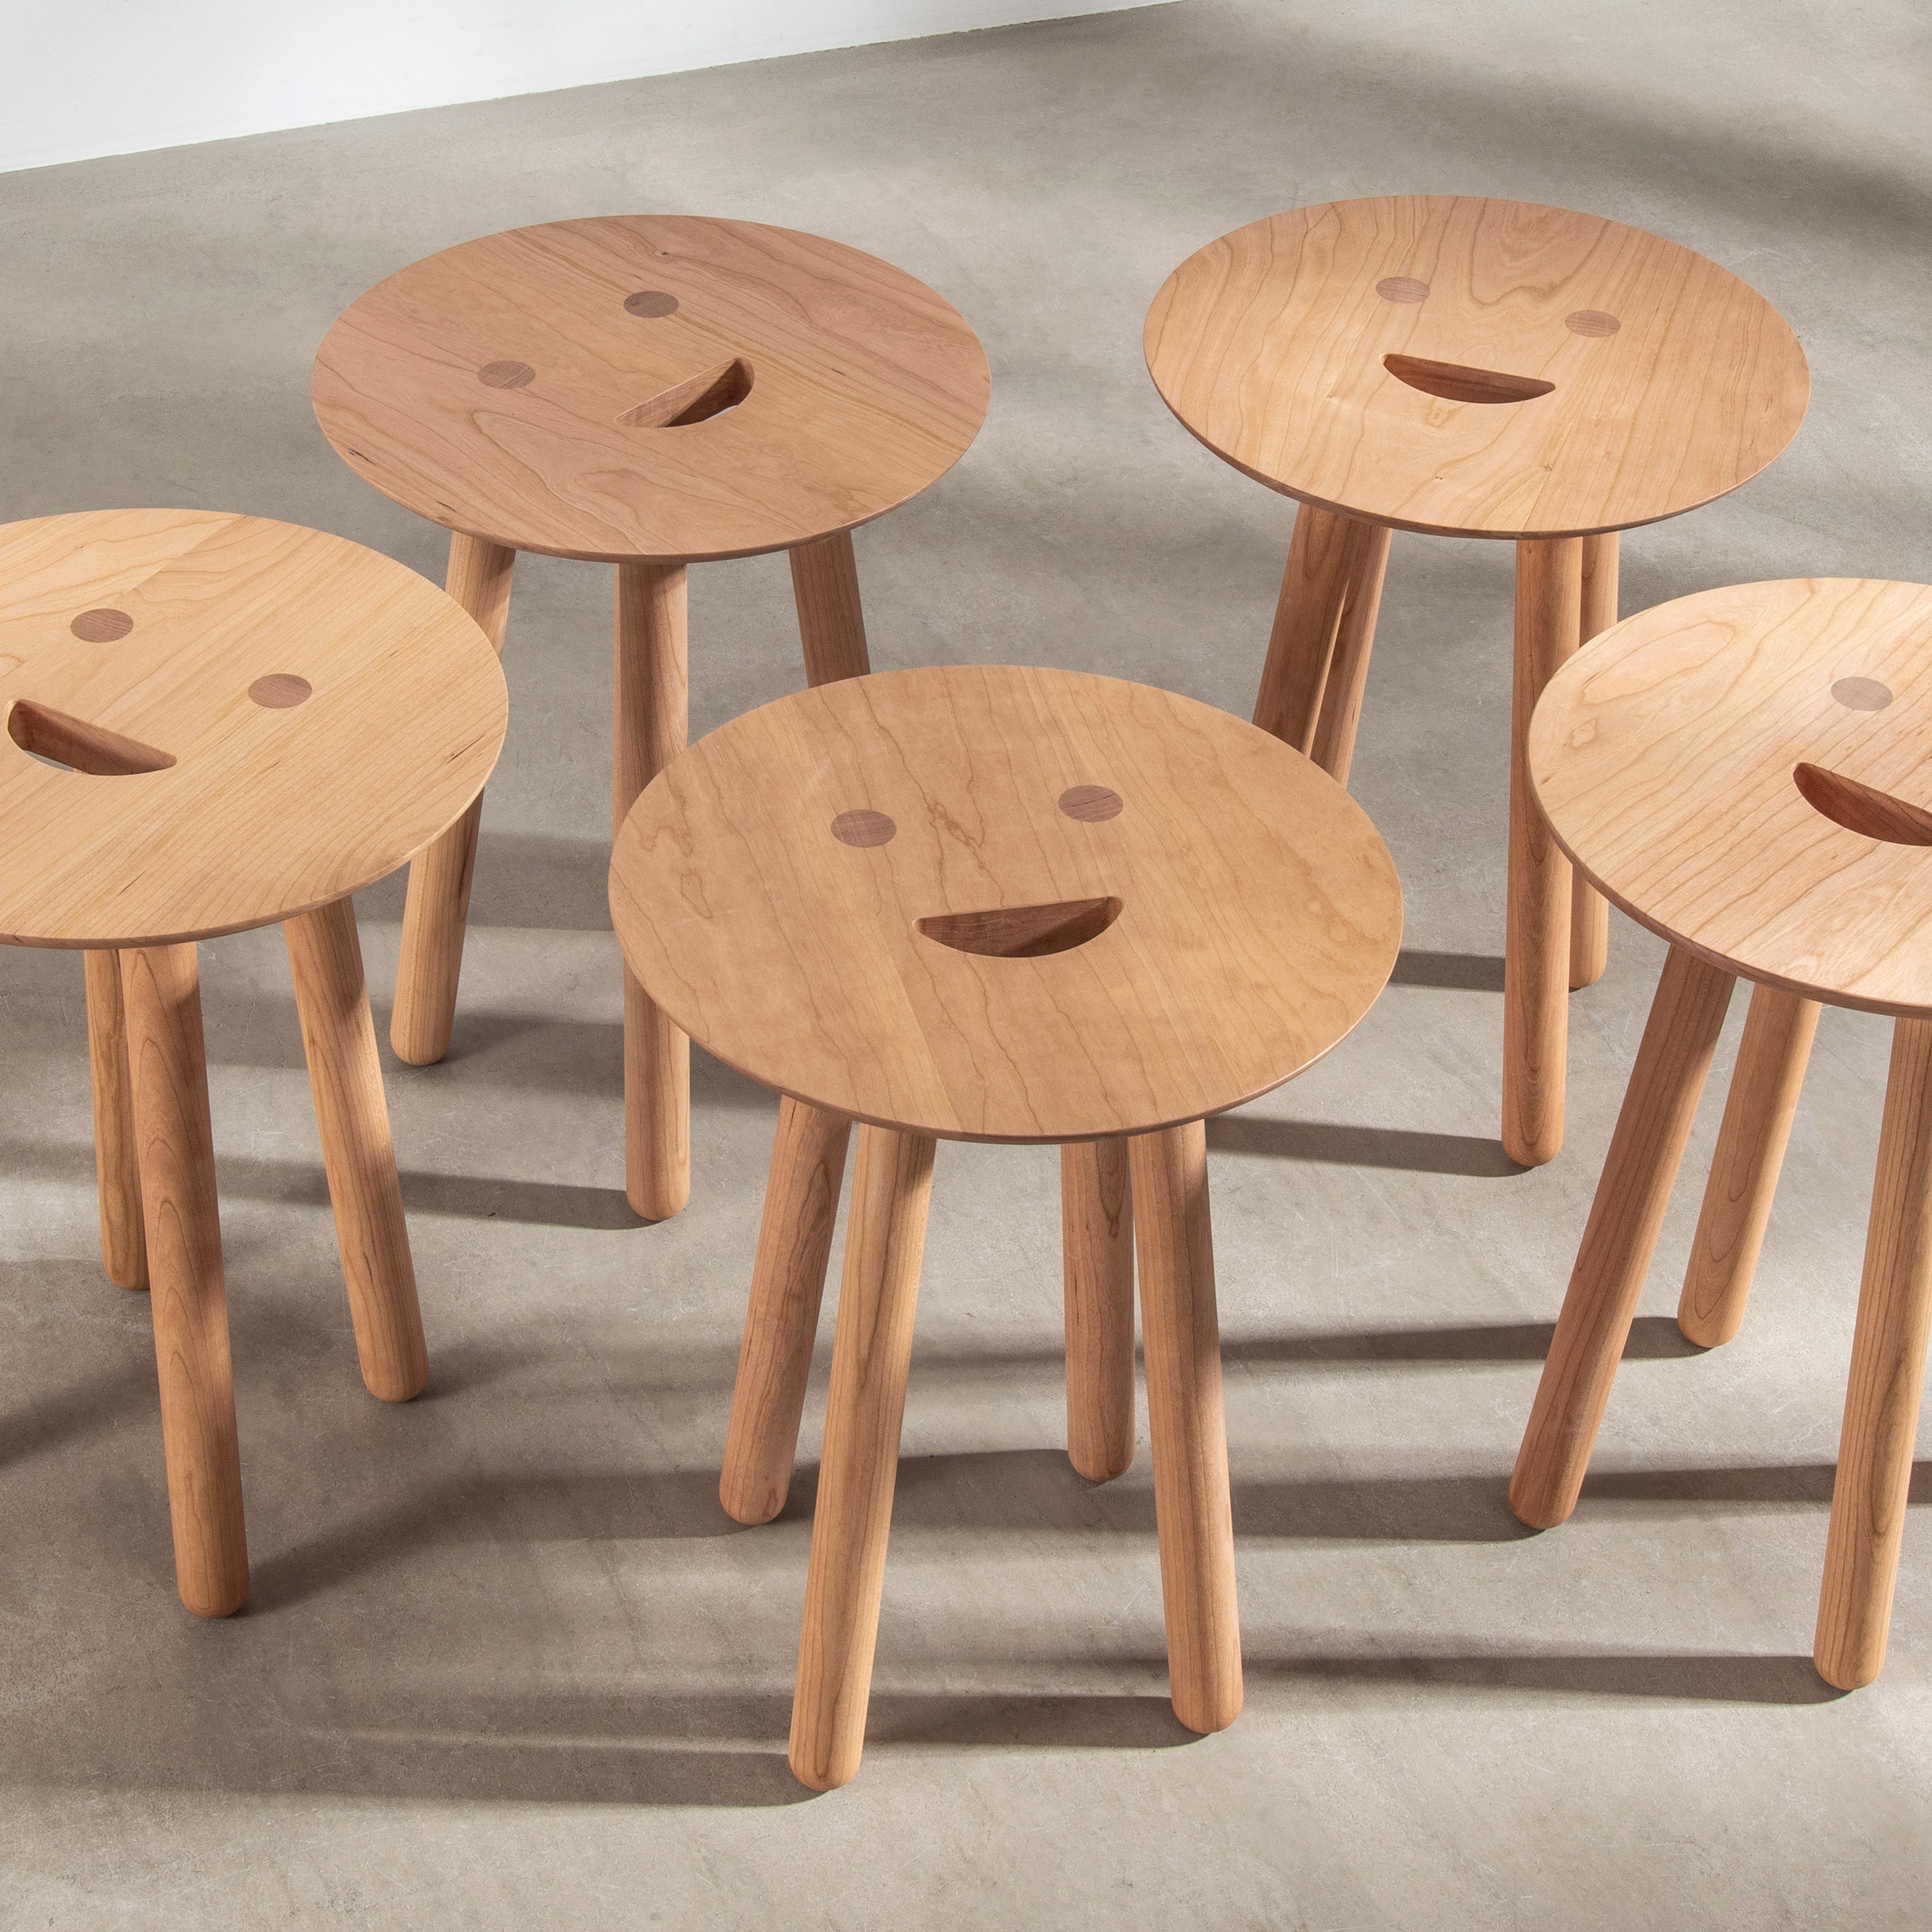 Smile Stool by Jaime Hayon for Benchmark